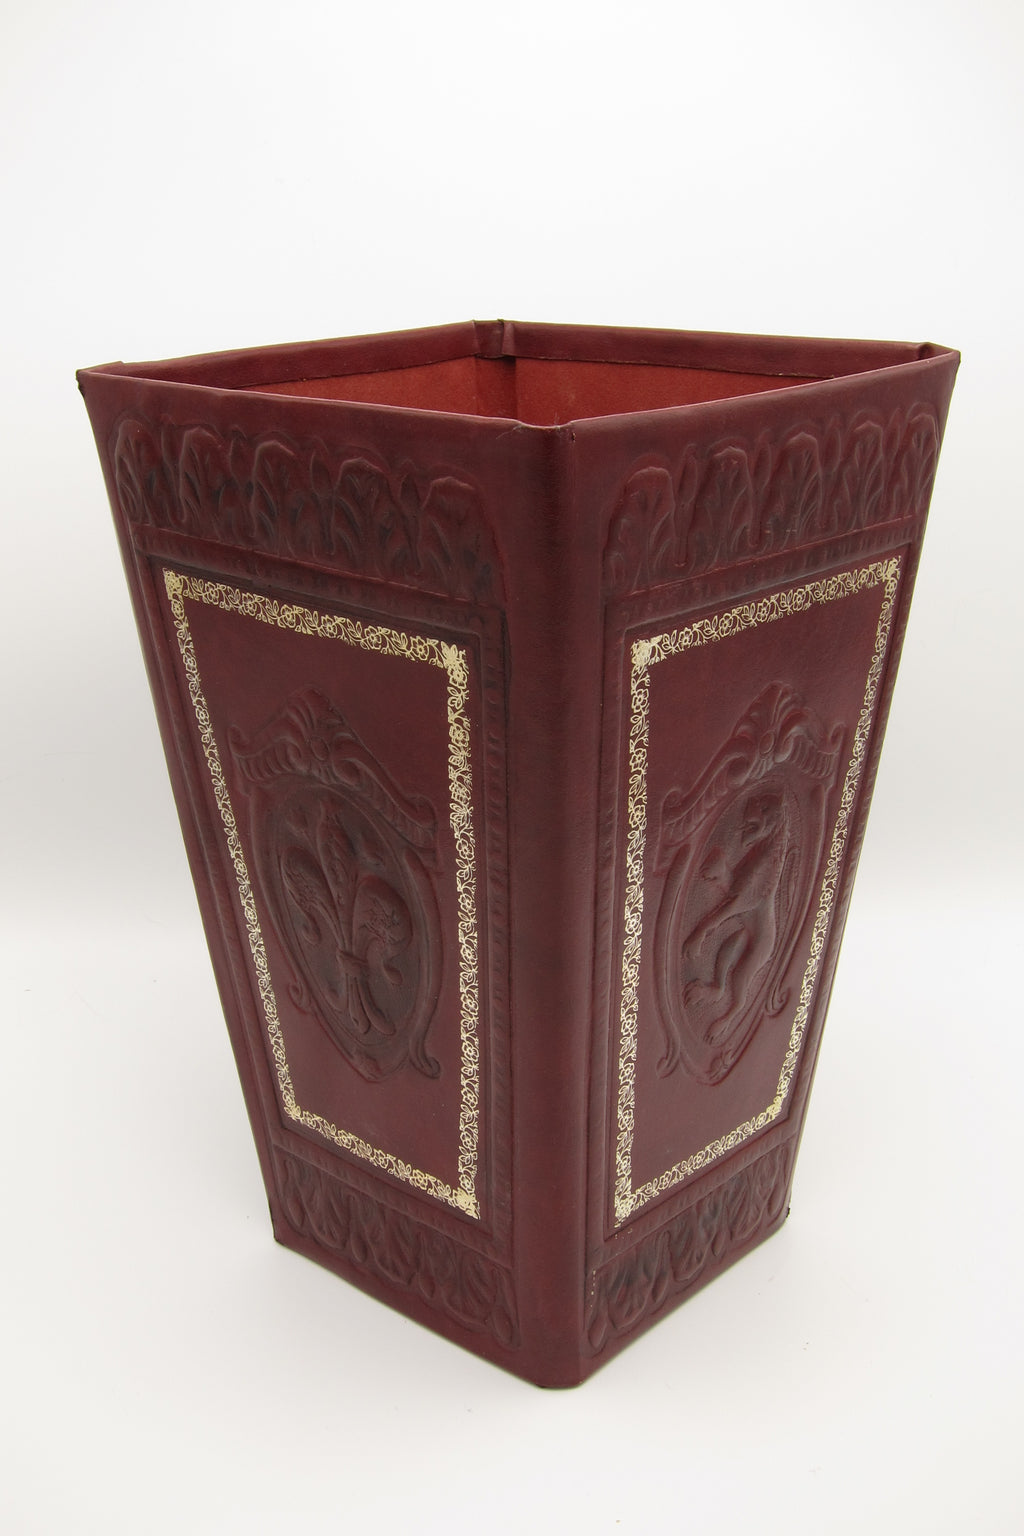 Vintage Florentine Leather Waste Basket -Red and Gold